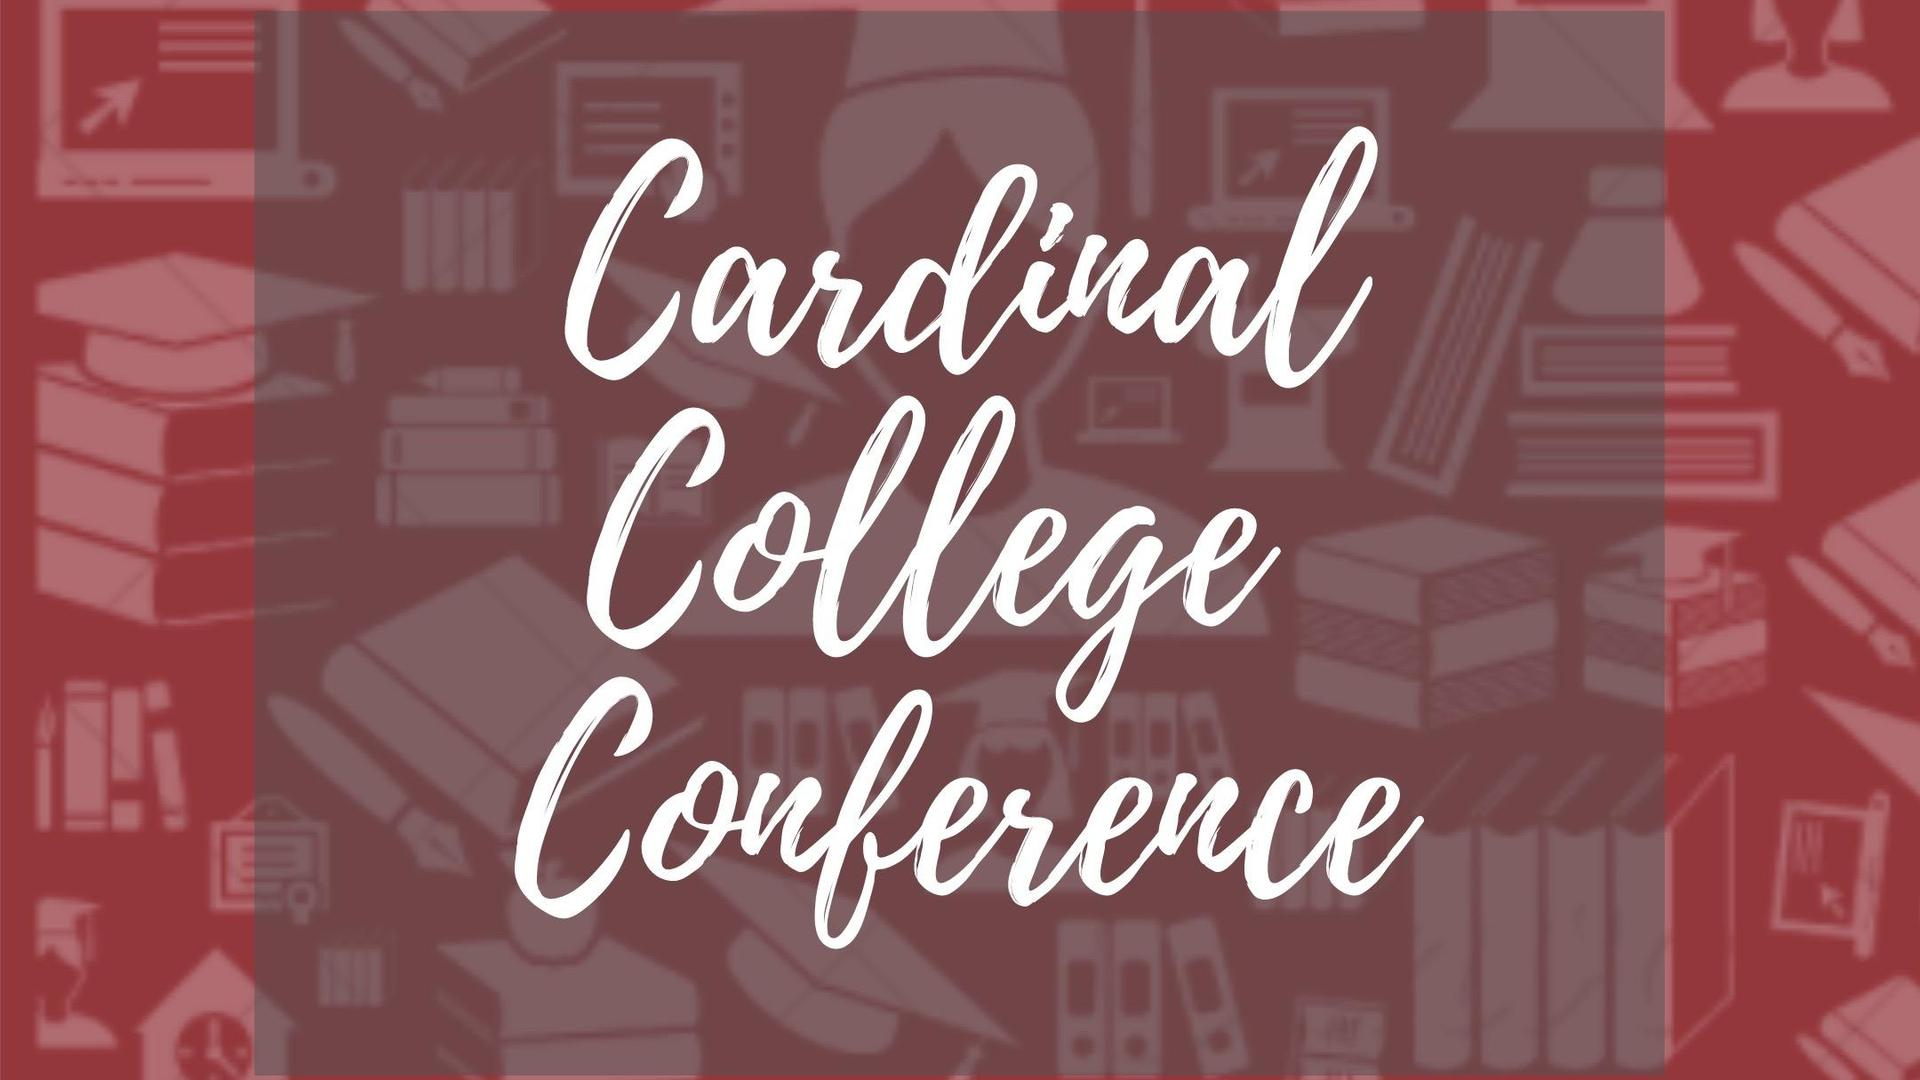 Cardinal College Conference